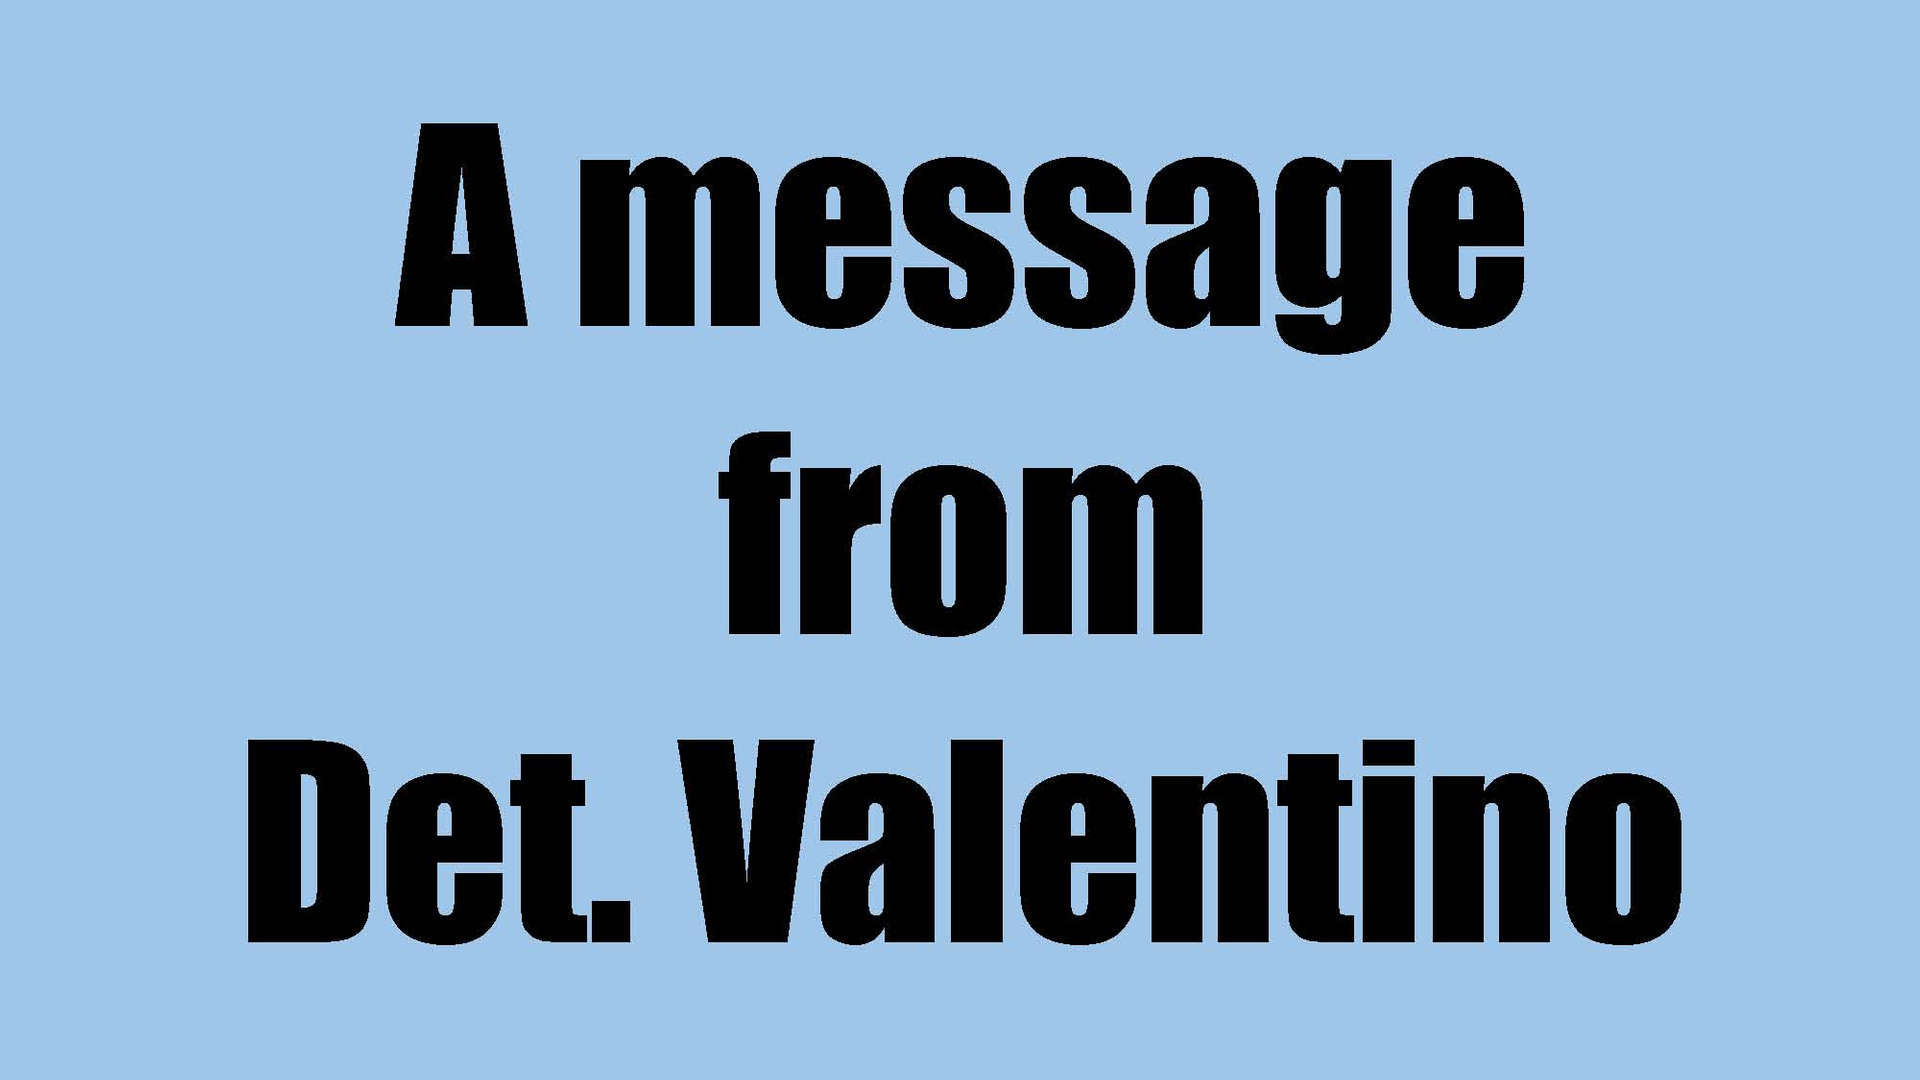 Message From Detective Valentine